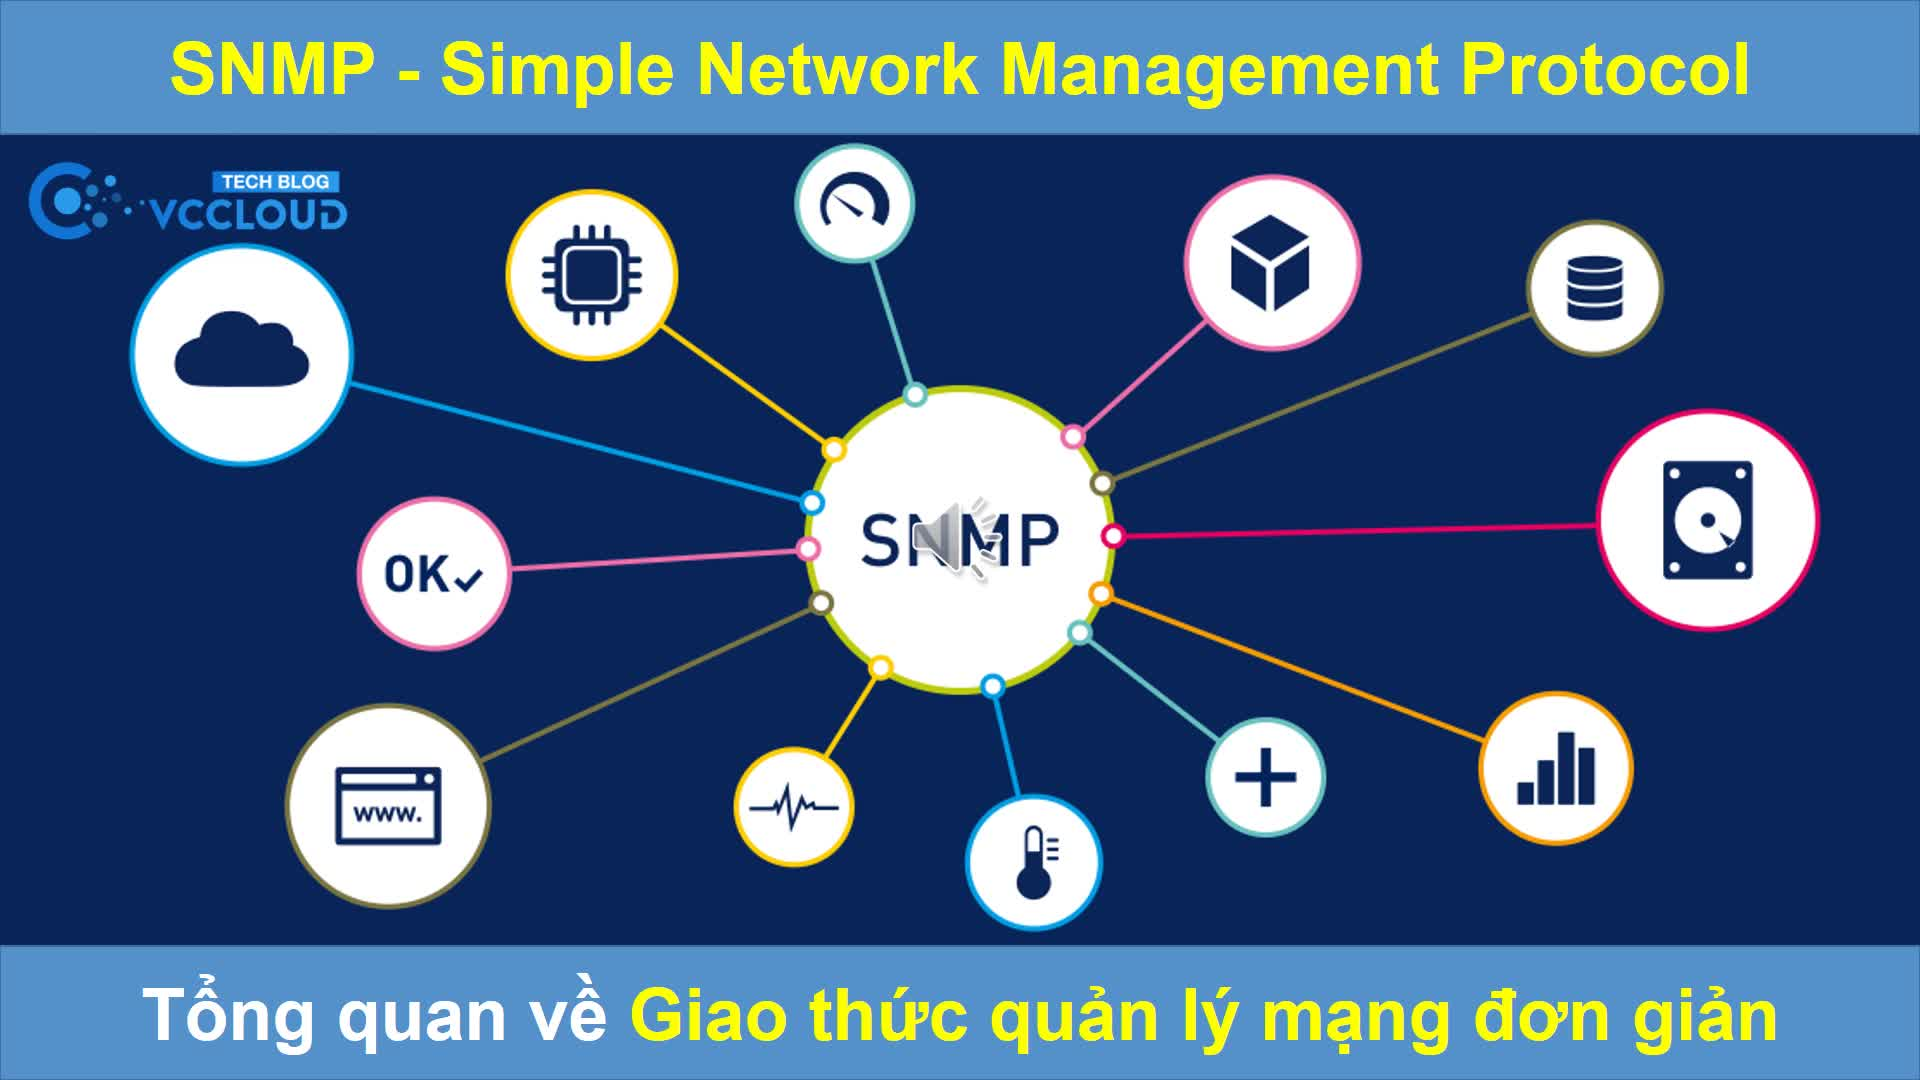 [Mutex video] SNMP - Simple Network Management Protocol là gì?